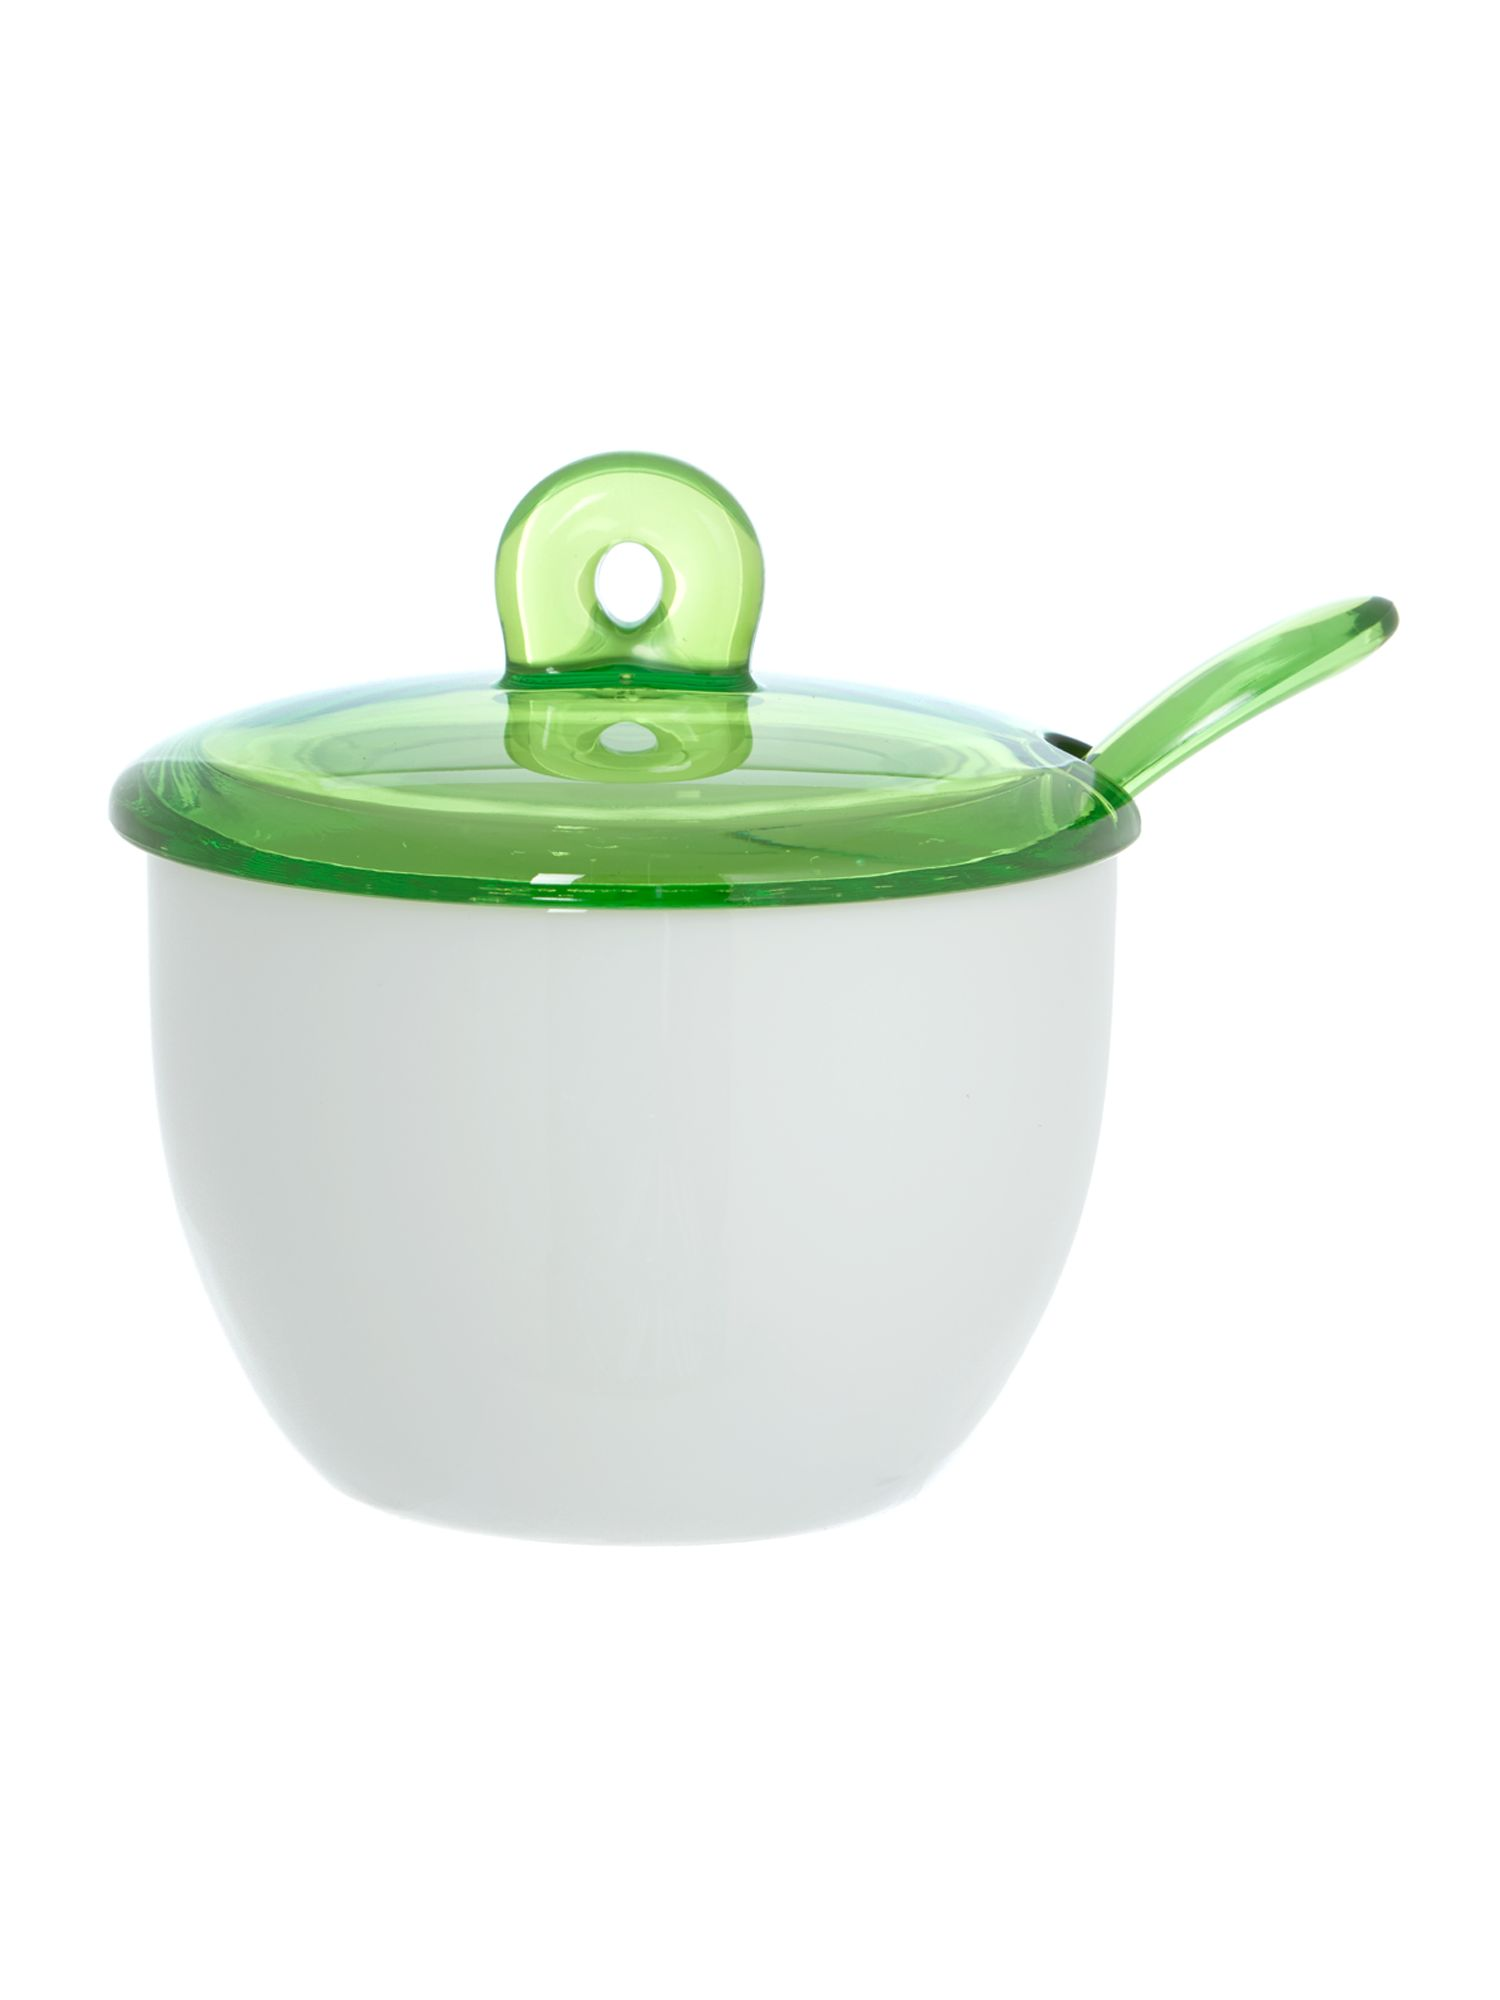 Sugar Bowl With Teaspoon Green